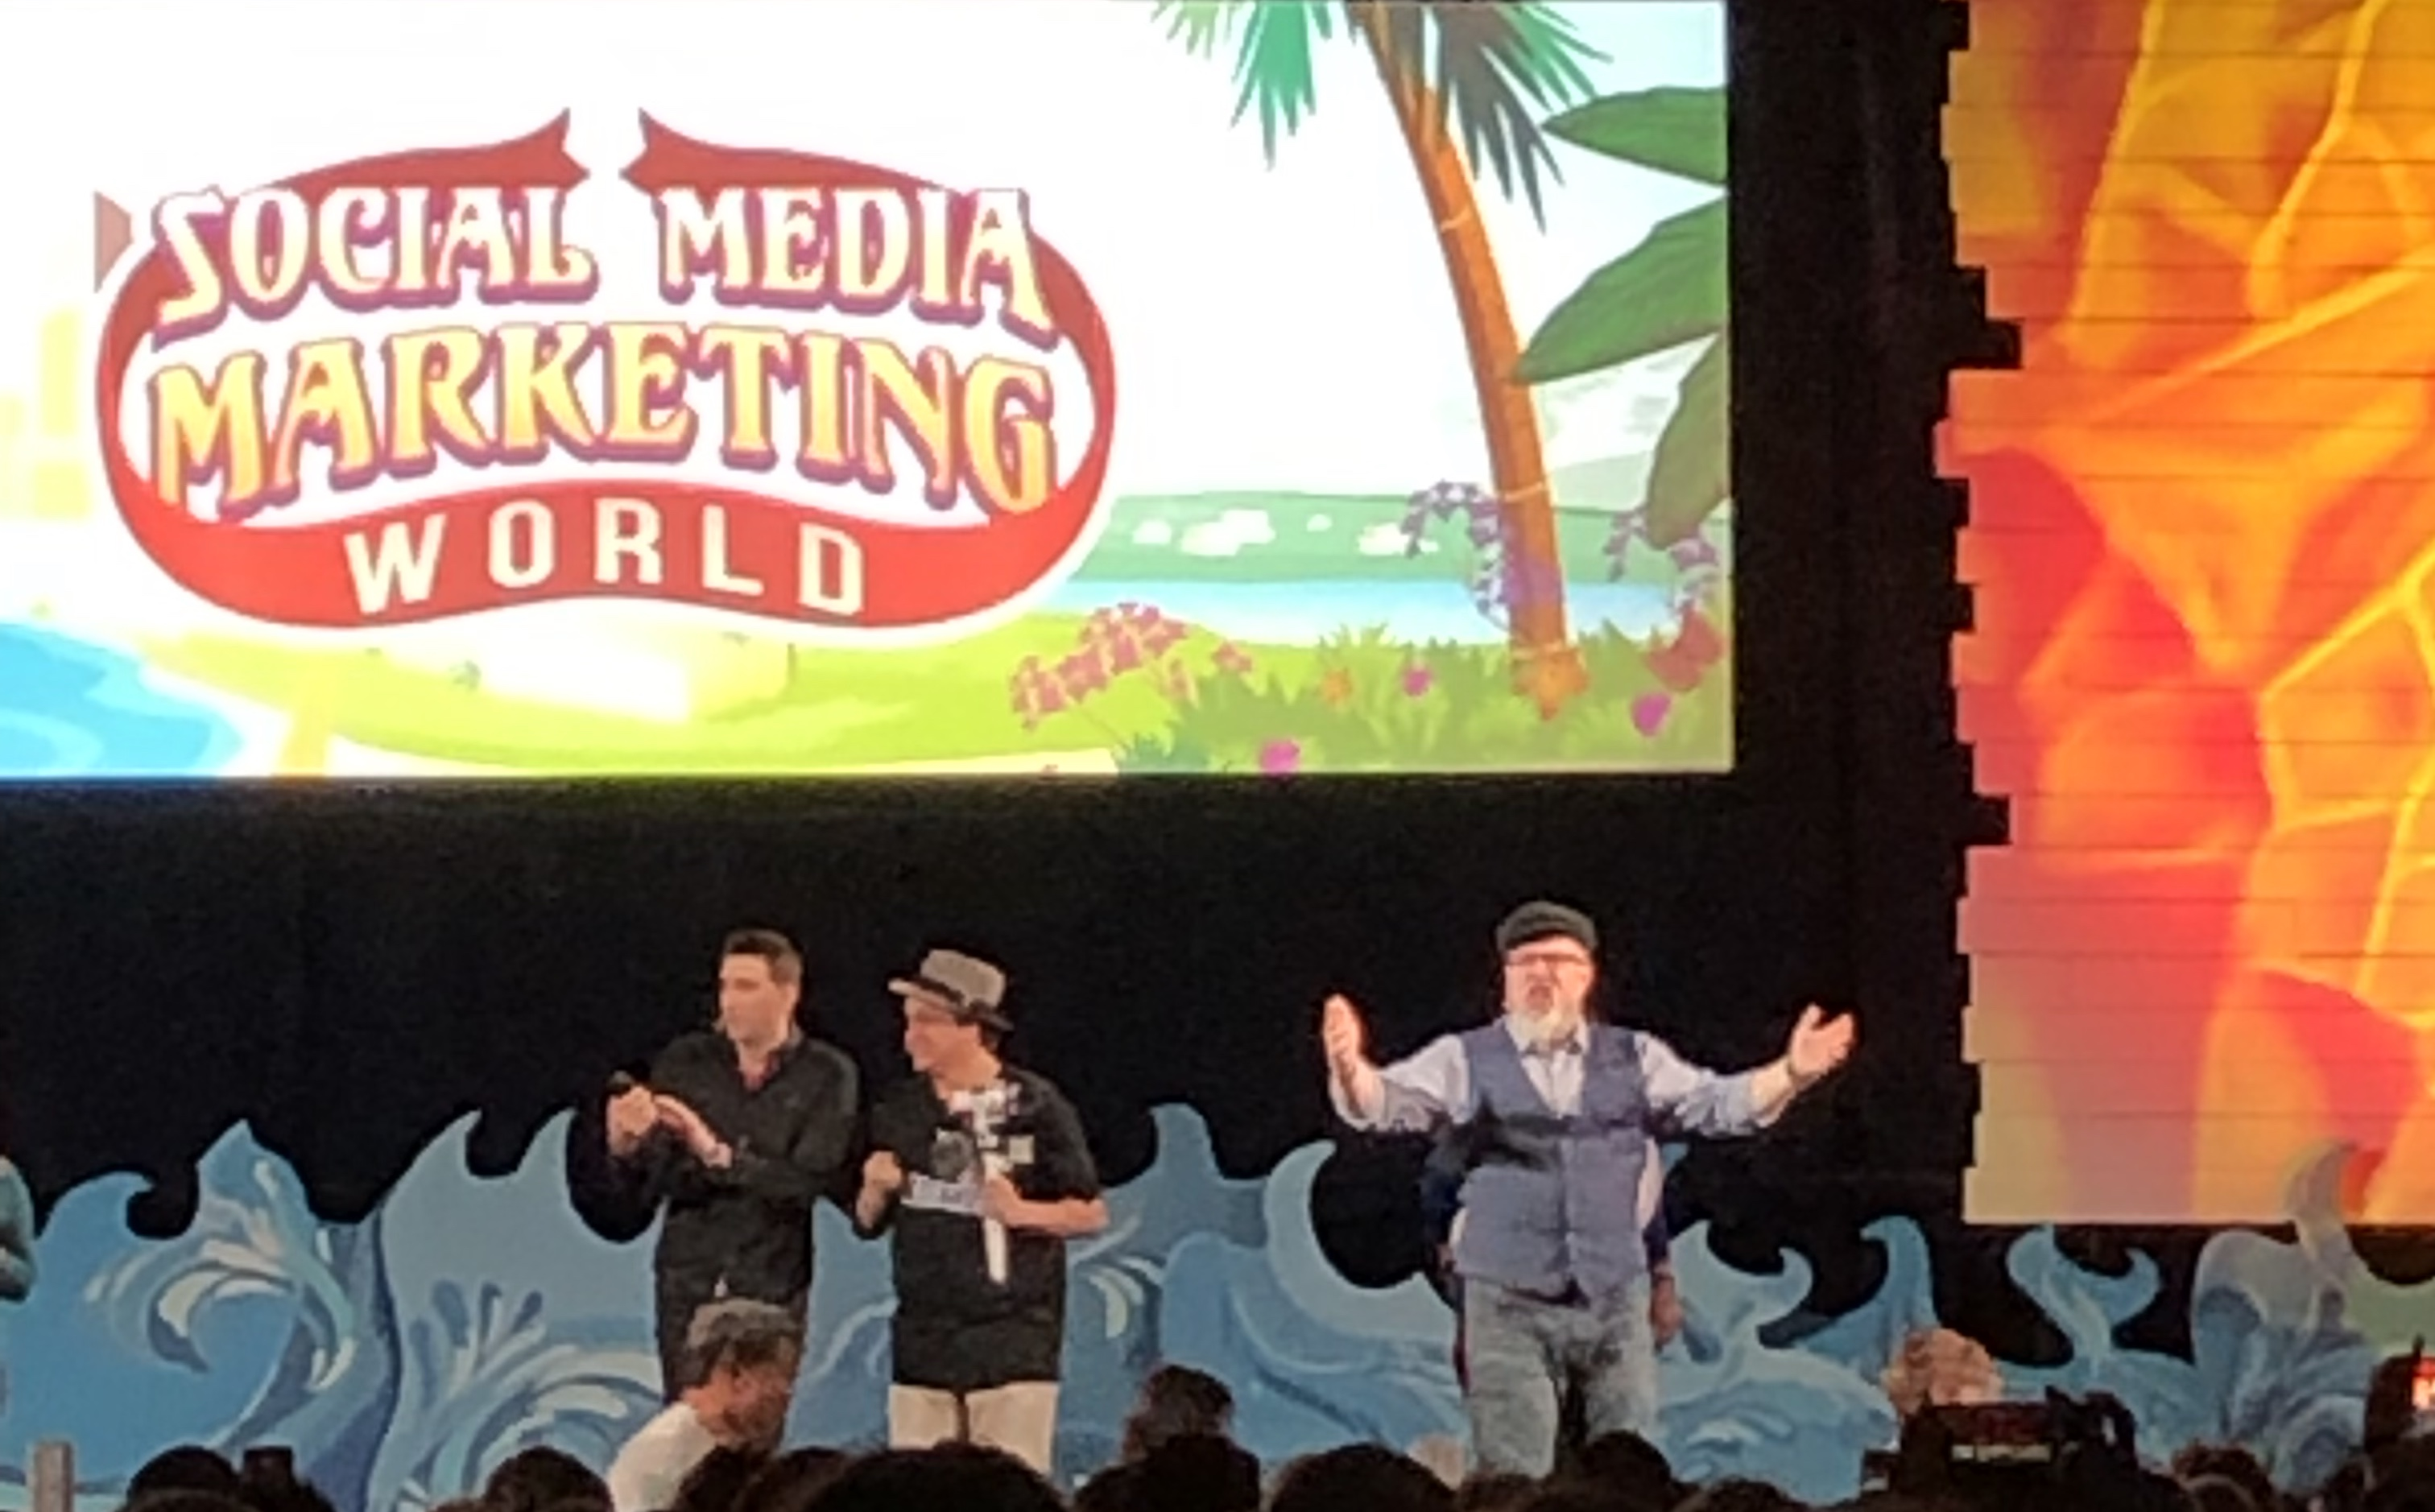 social media marketing world stage